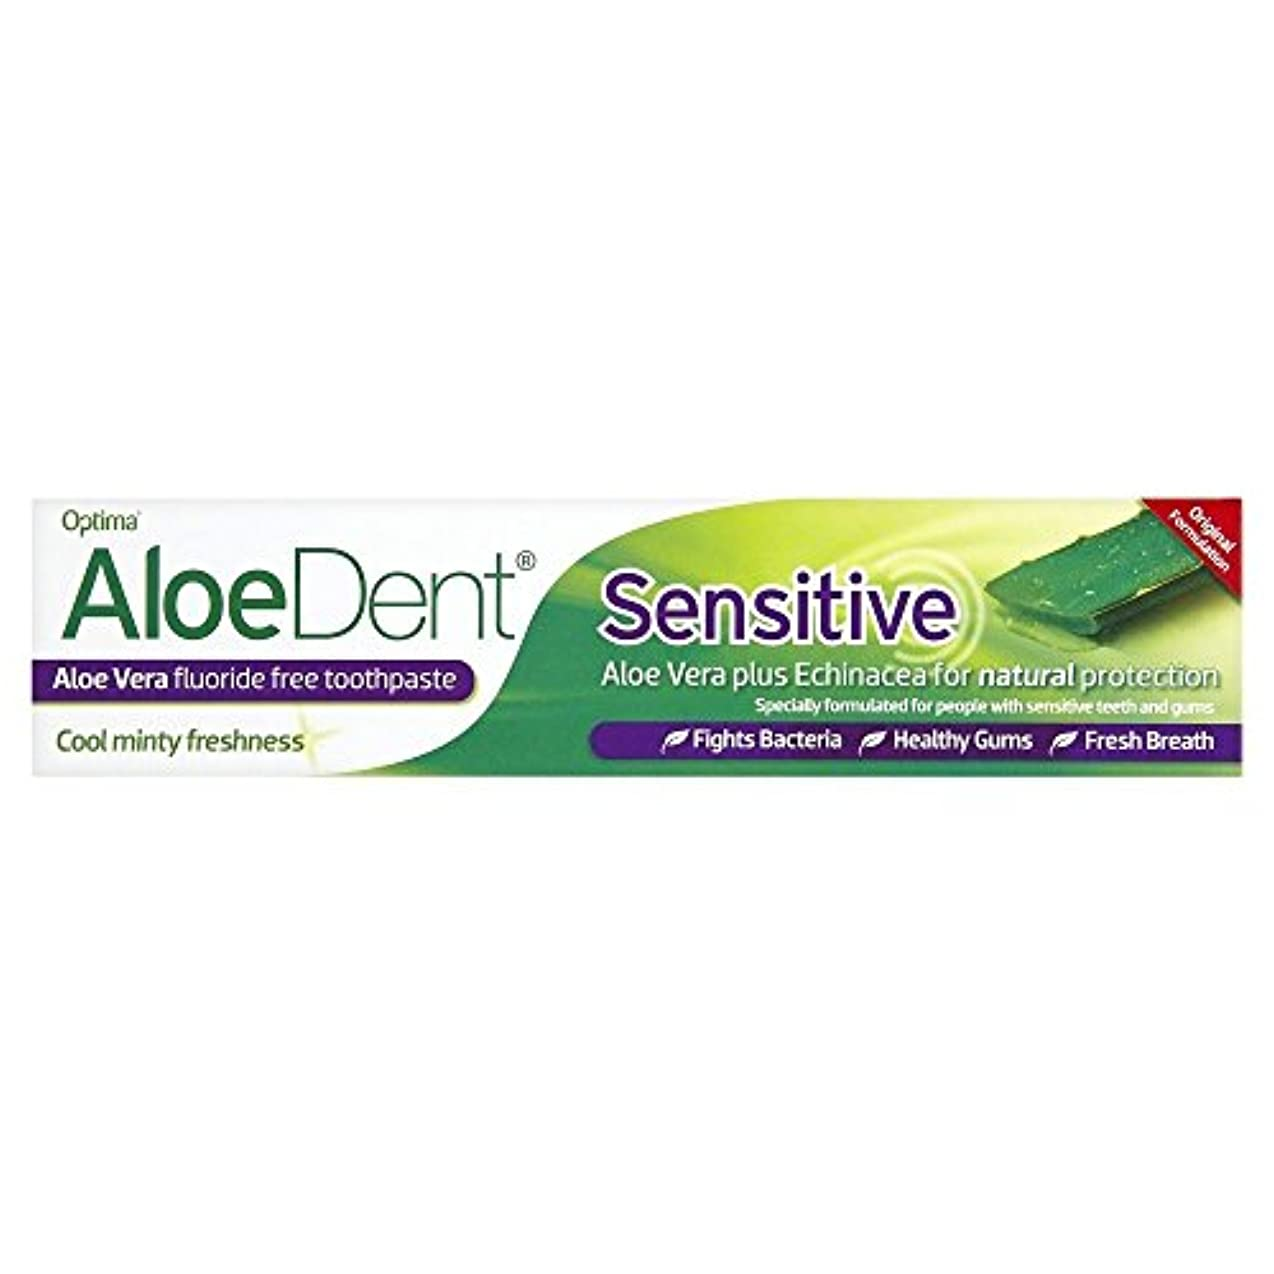 AloeDent 100 ml Sensitive Aloe Vera Fluoride Free Toothpaste by Aloe Dent